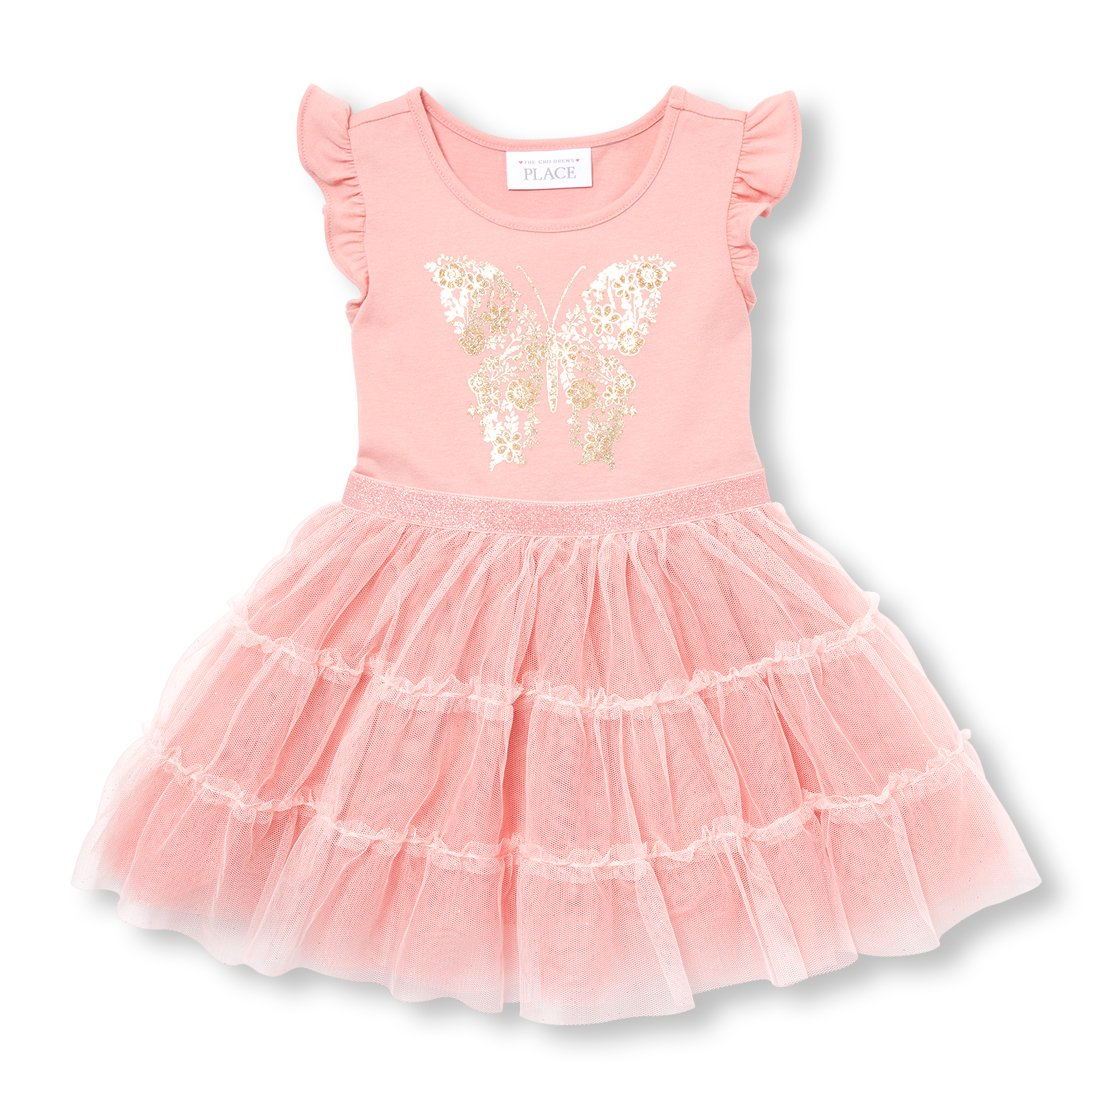 9213558b Amazon.com: The Children's Place Baby Girls Glitter Mesh Dress: Clothing